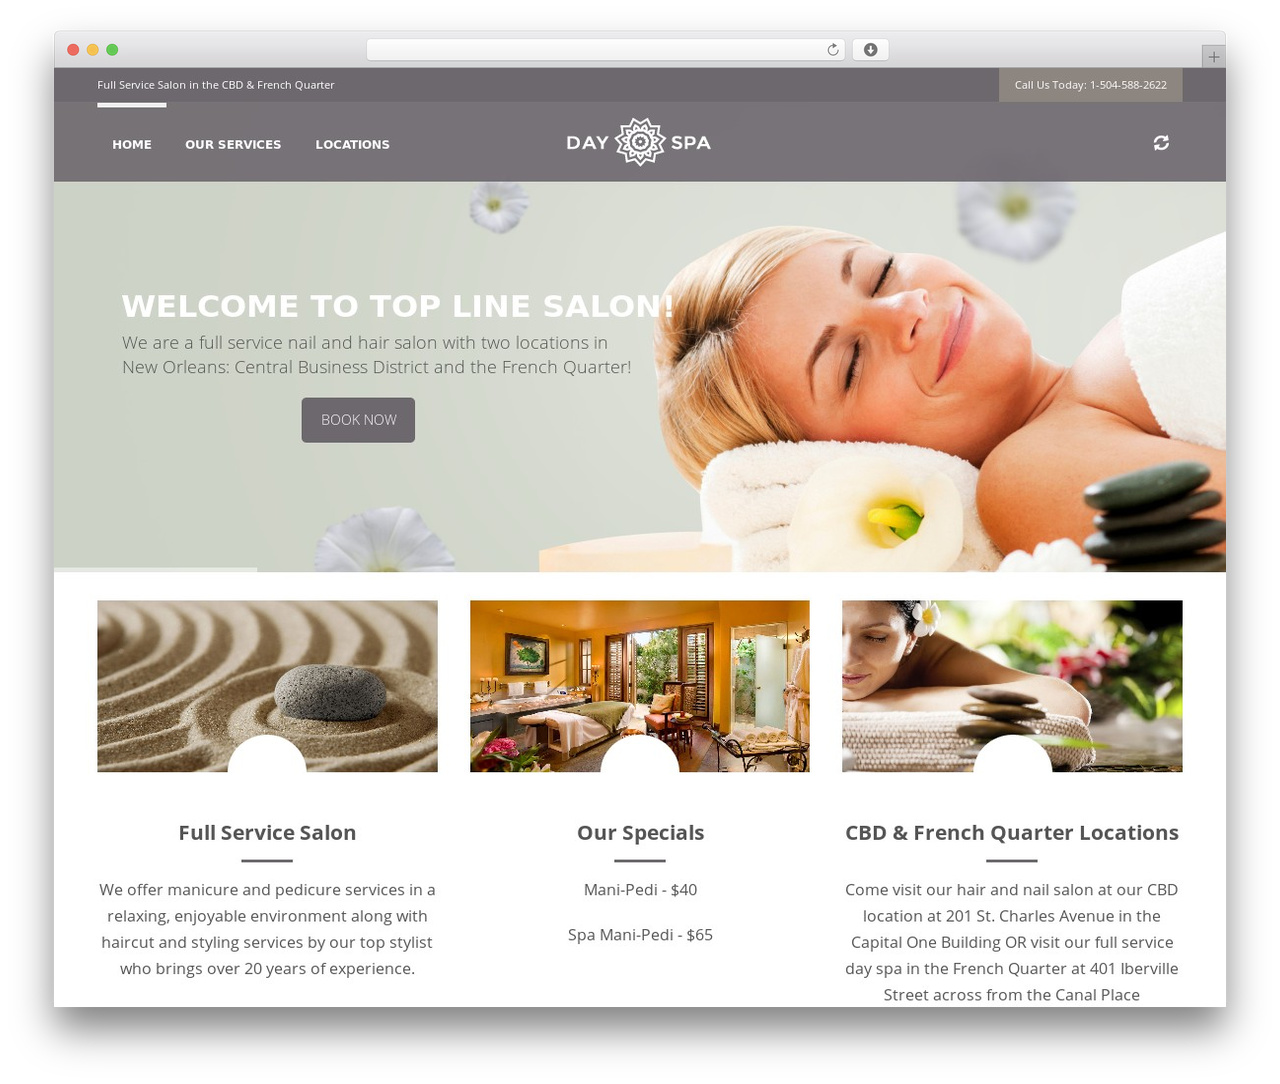 wp day spa wordpress website template by chris robinson